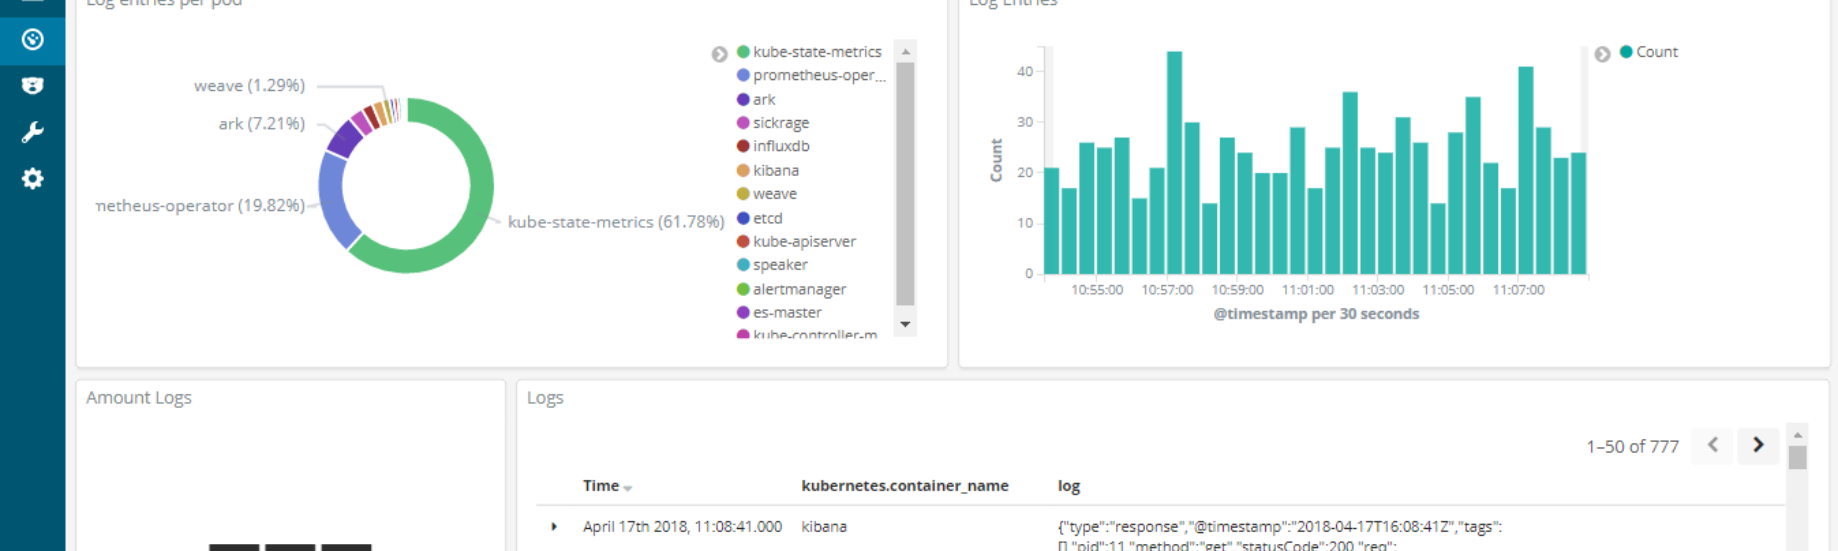 Log aggregation with ElasticSearch, Fluentd and Kibana stack on